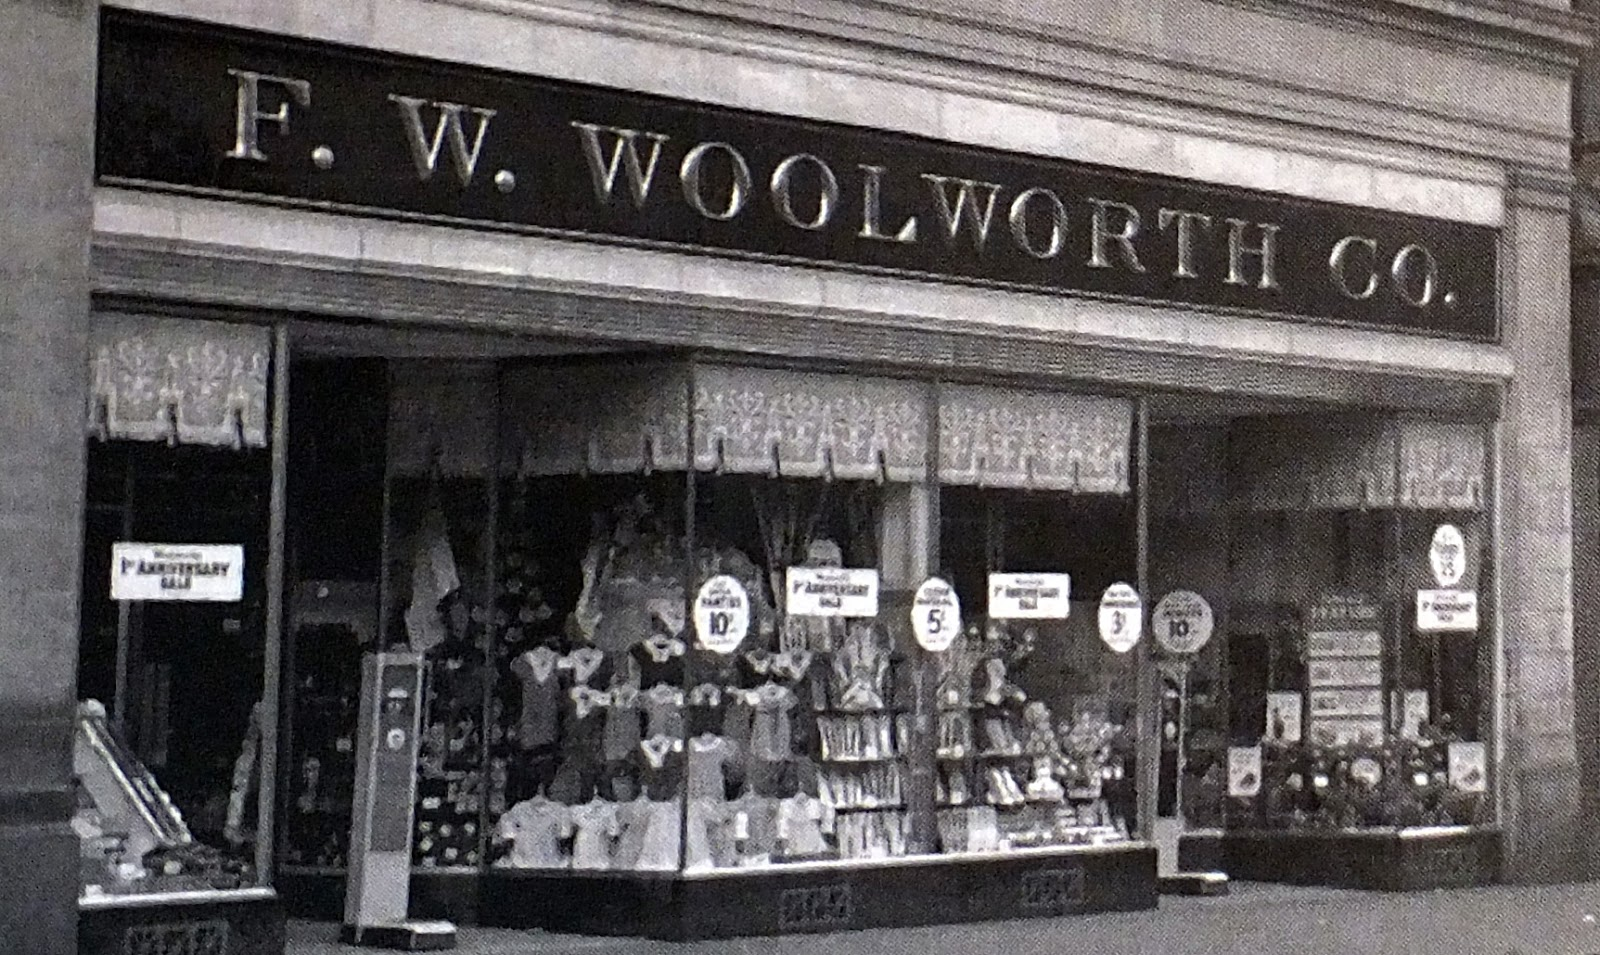 F.W. Woolworth Co. Building | Im not sure when this